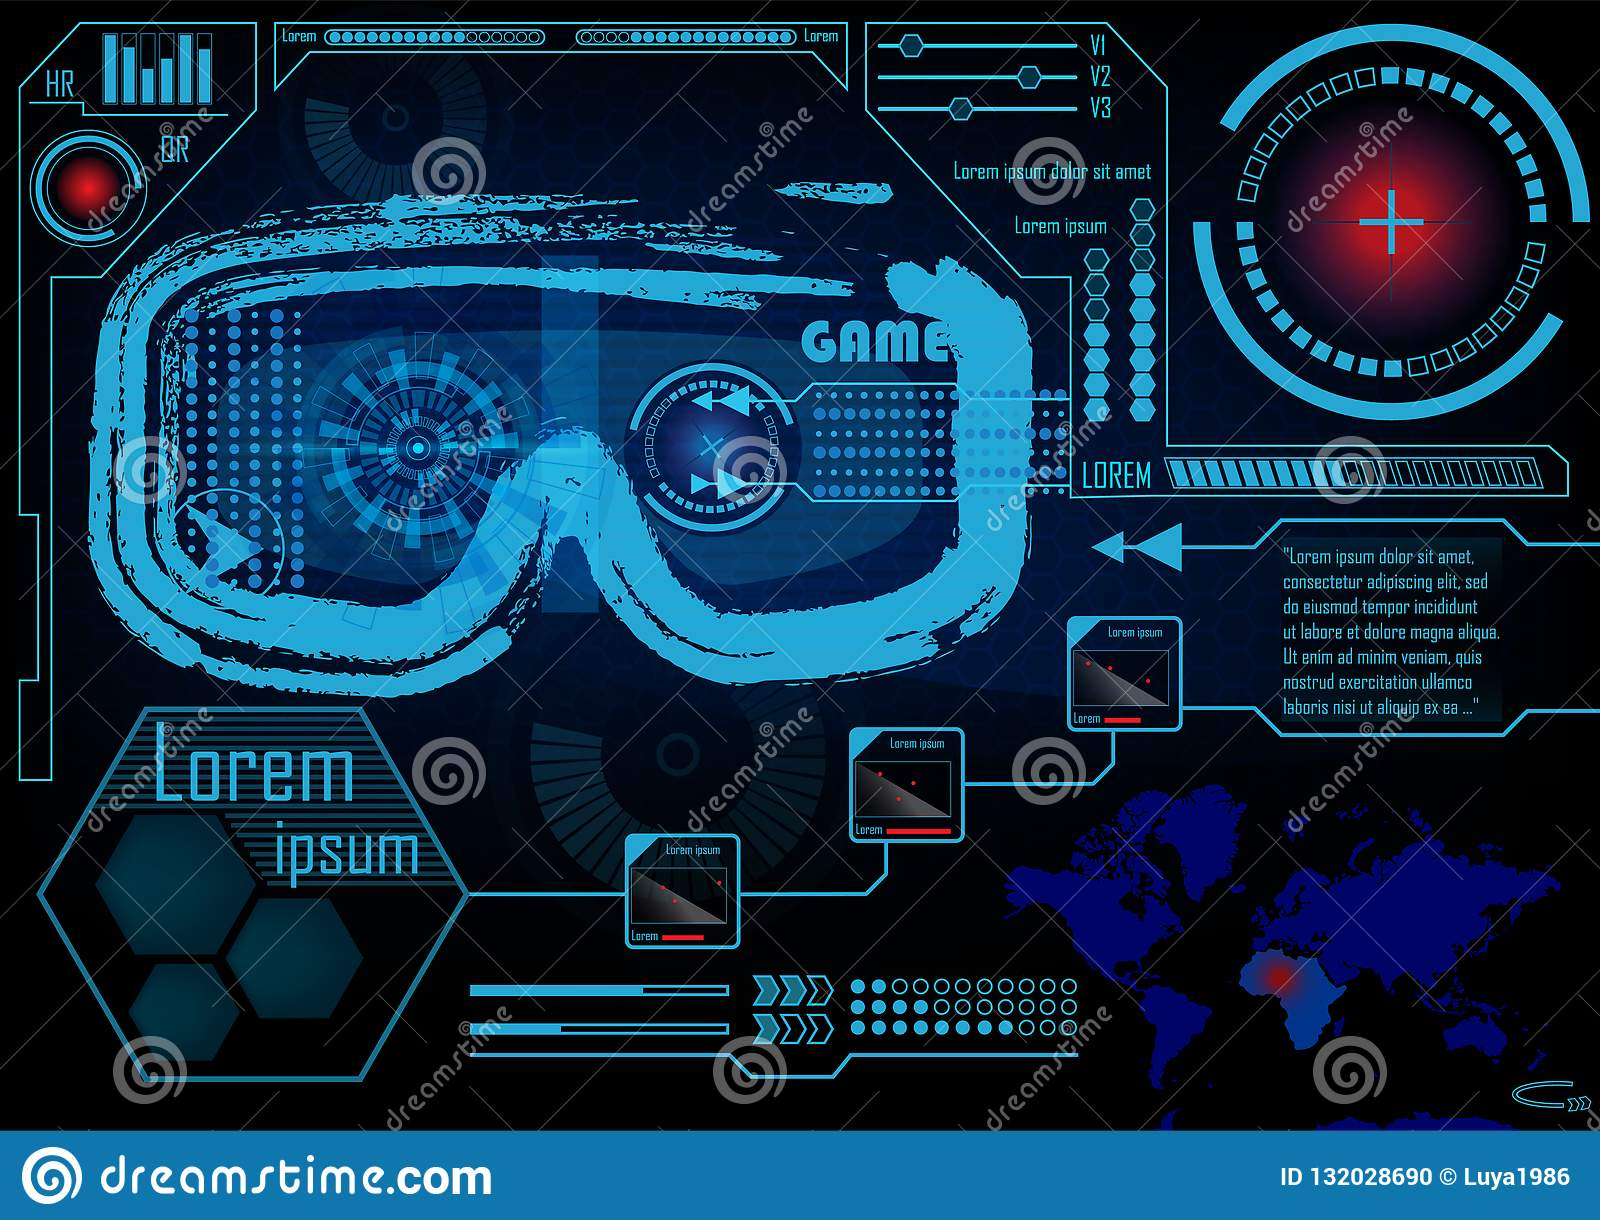 Technology Concept With Hud, Gui Design Elements. Head-up Display Monitor. Futuristic User Interface. Infographic Menu Ui For